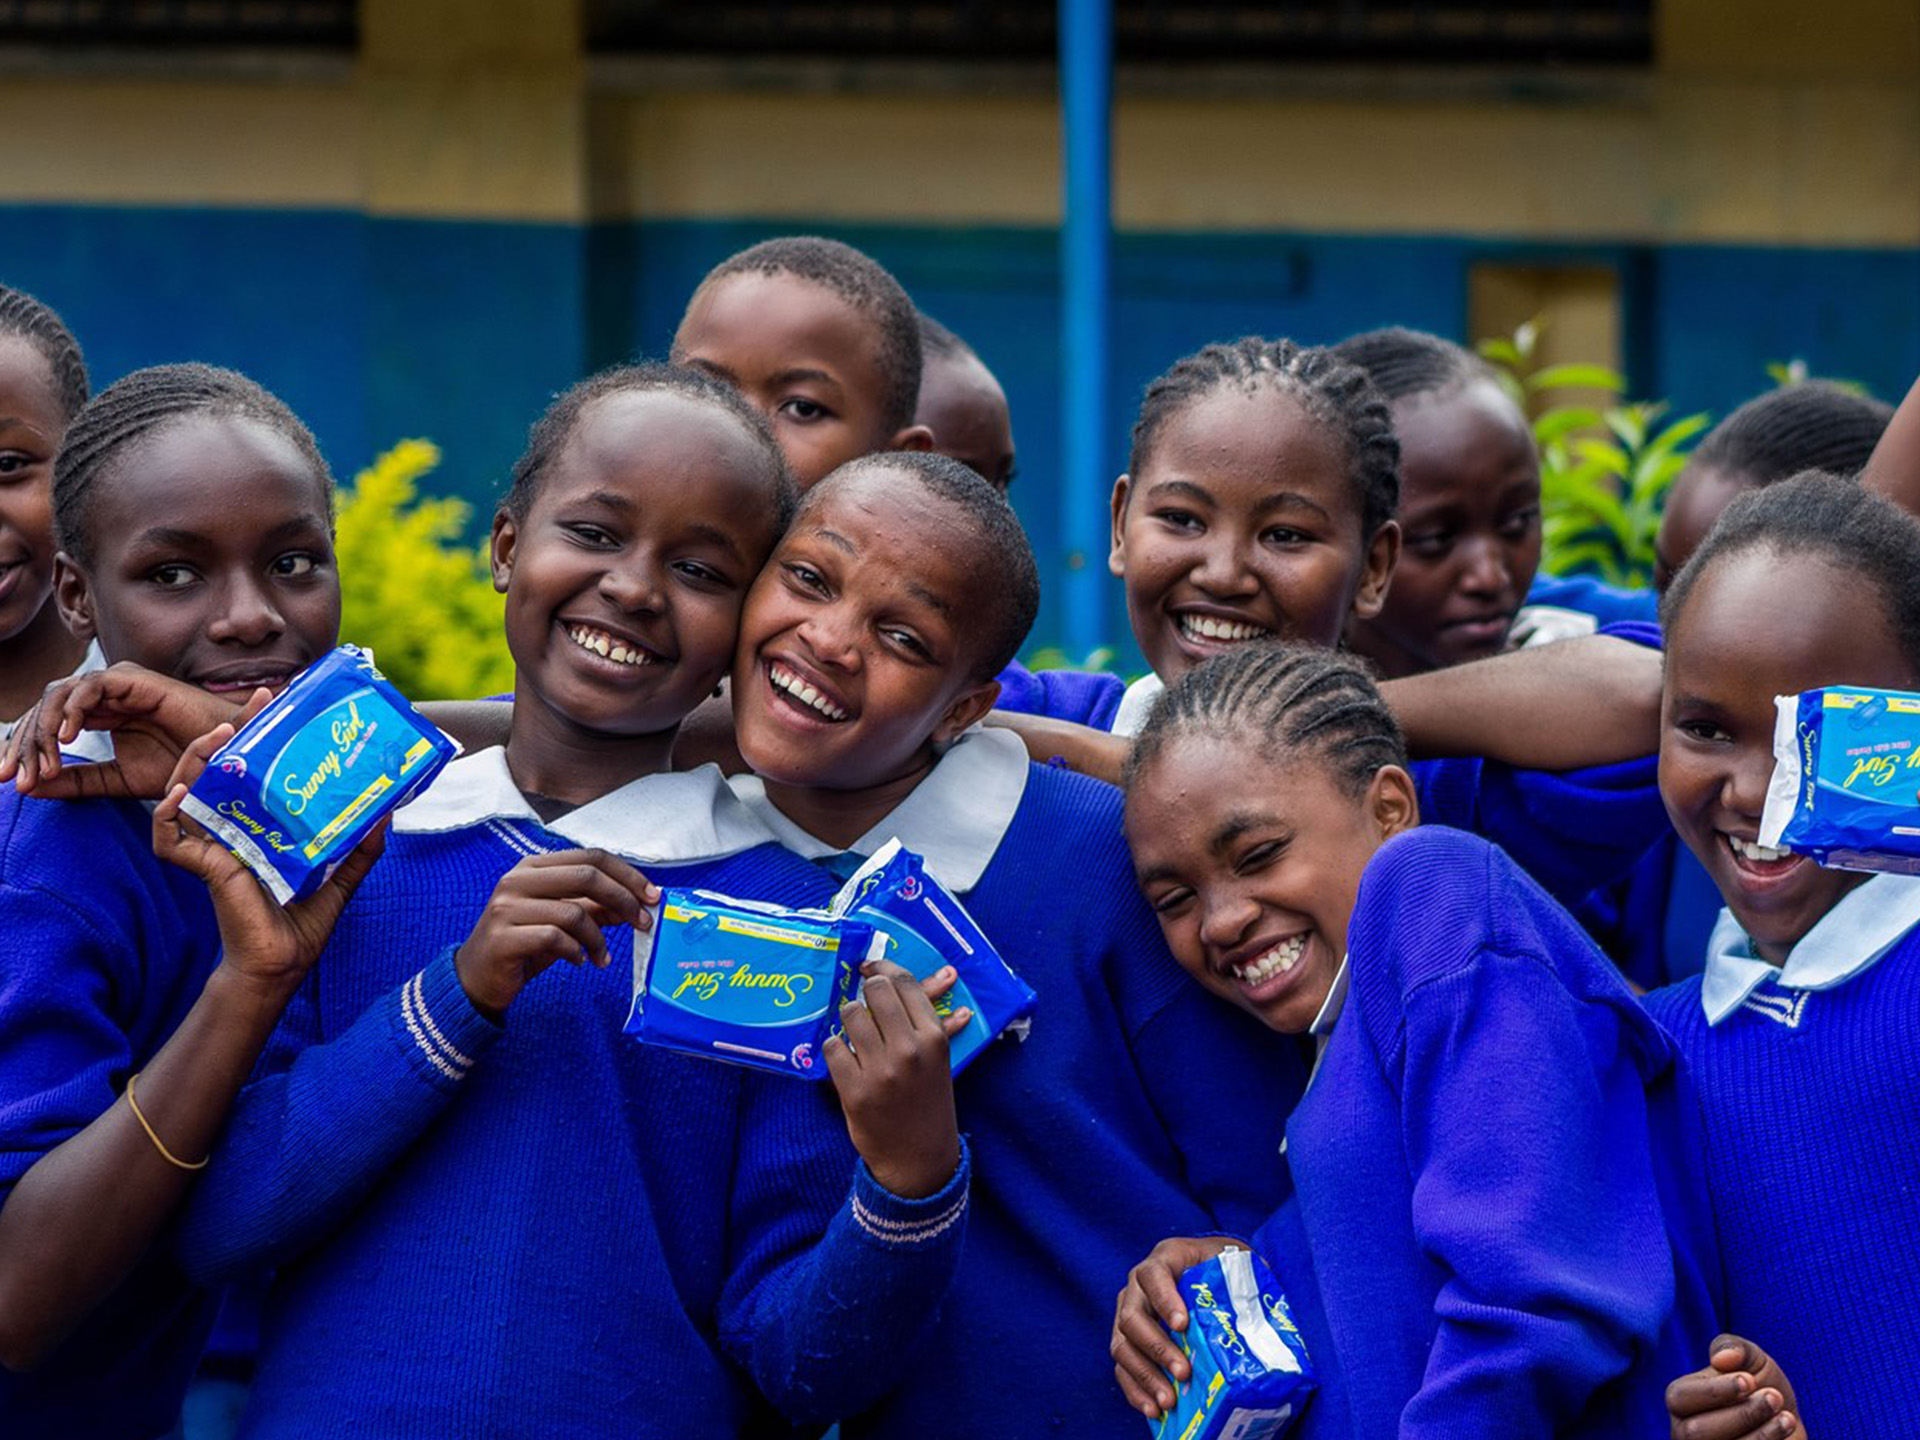 Why we must invest in girls' education beyond the classroom